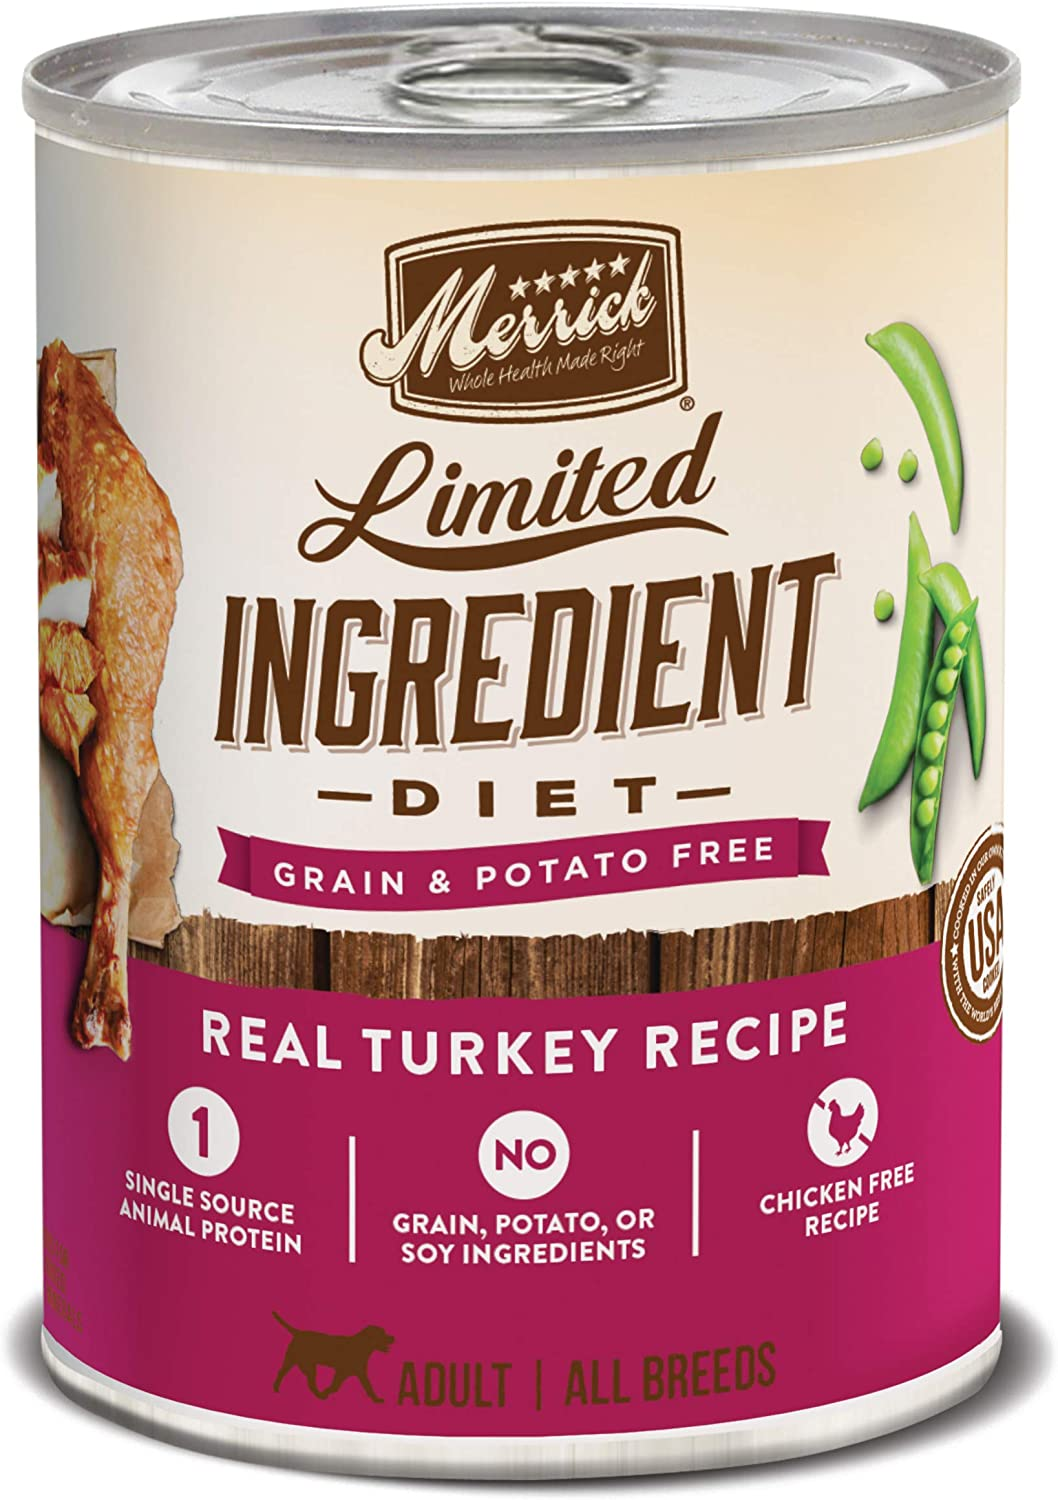 Merrick Limited Ingredient Diet Canned Dog Food